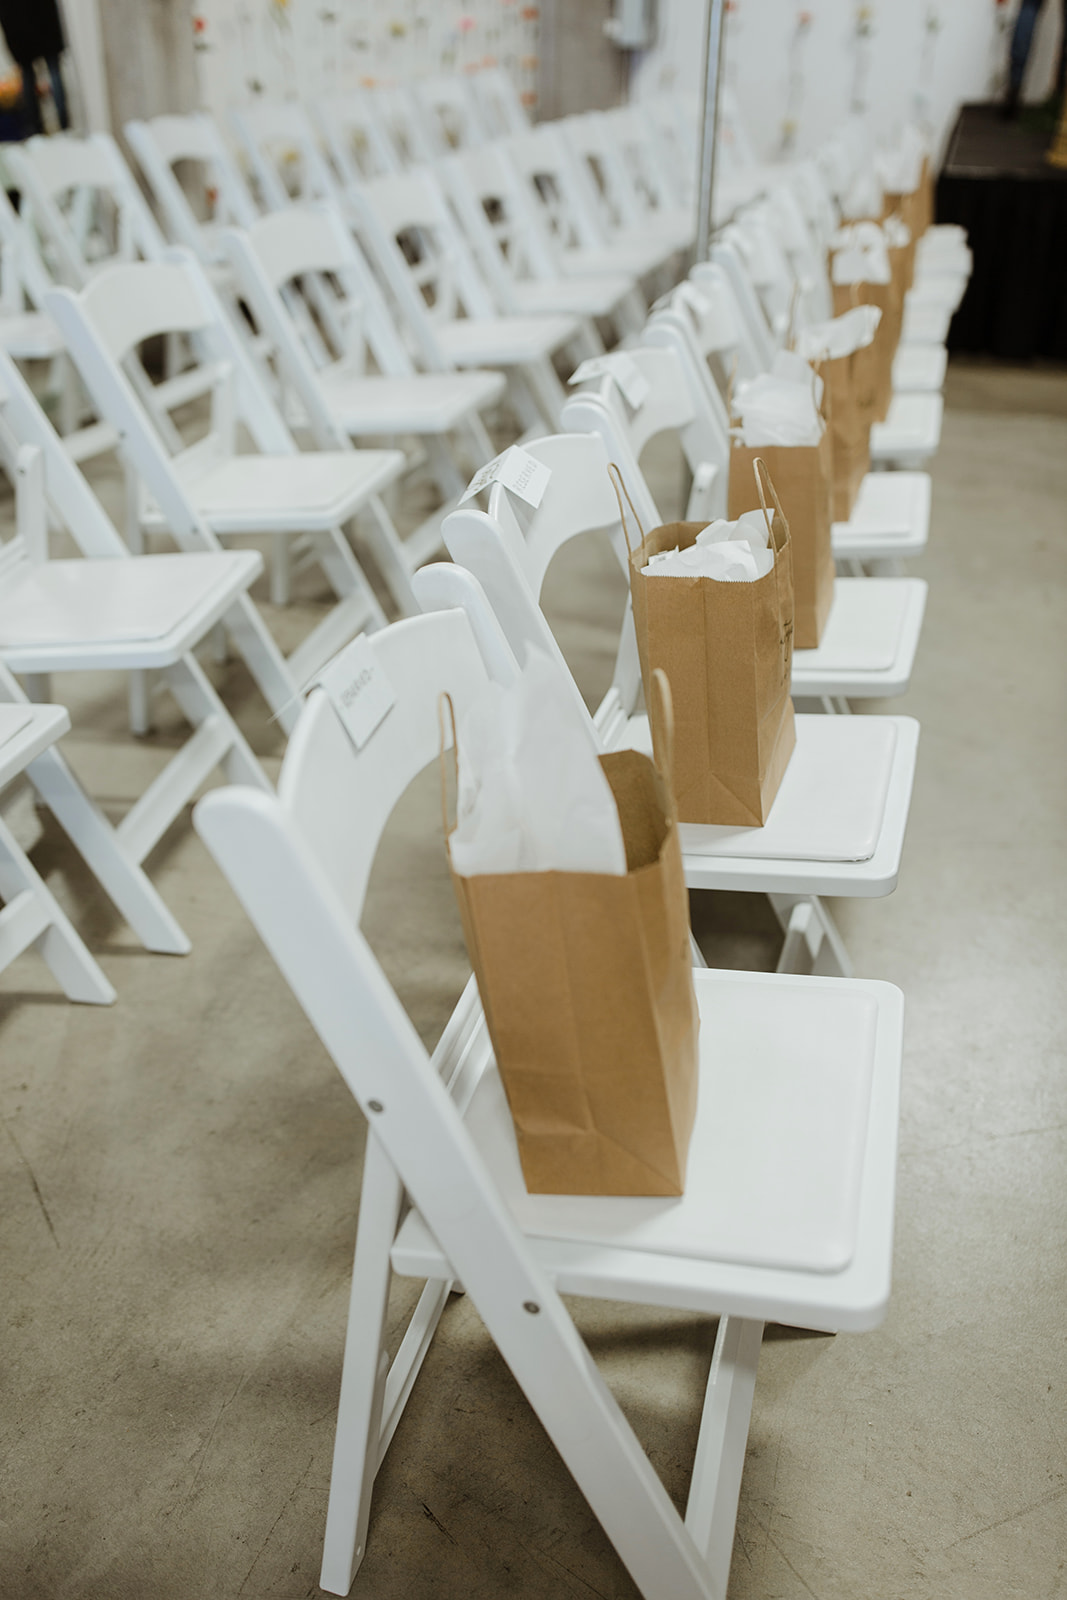 spokane wedding dress fashion show swag bag seating gift